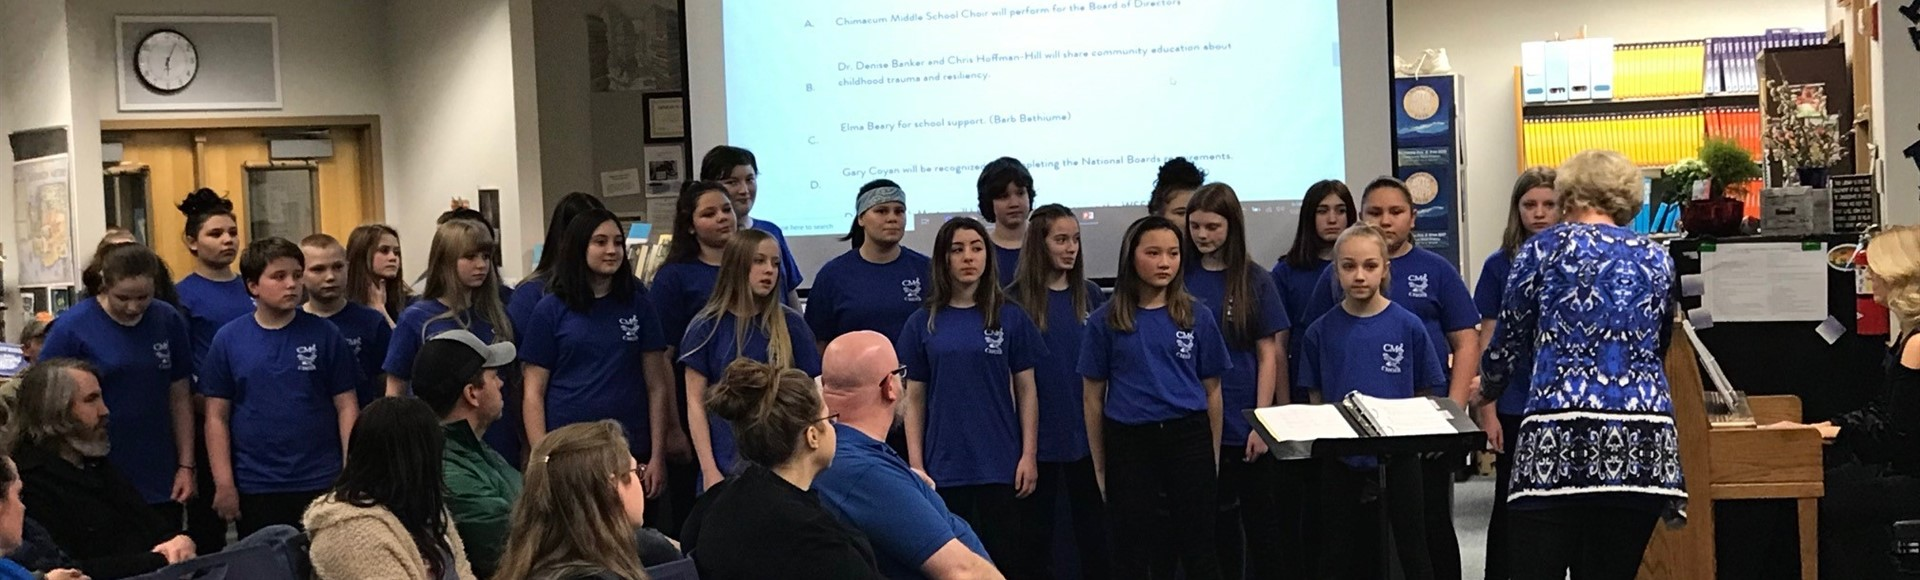 CMS Choir performs for CSD Board of Directors January 2019